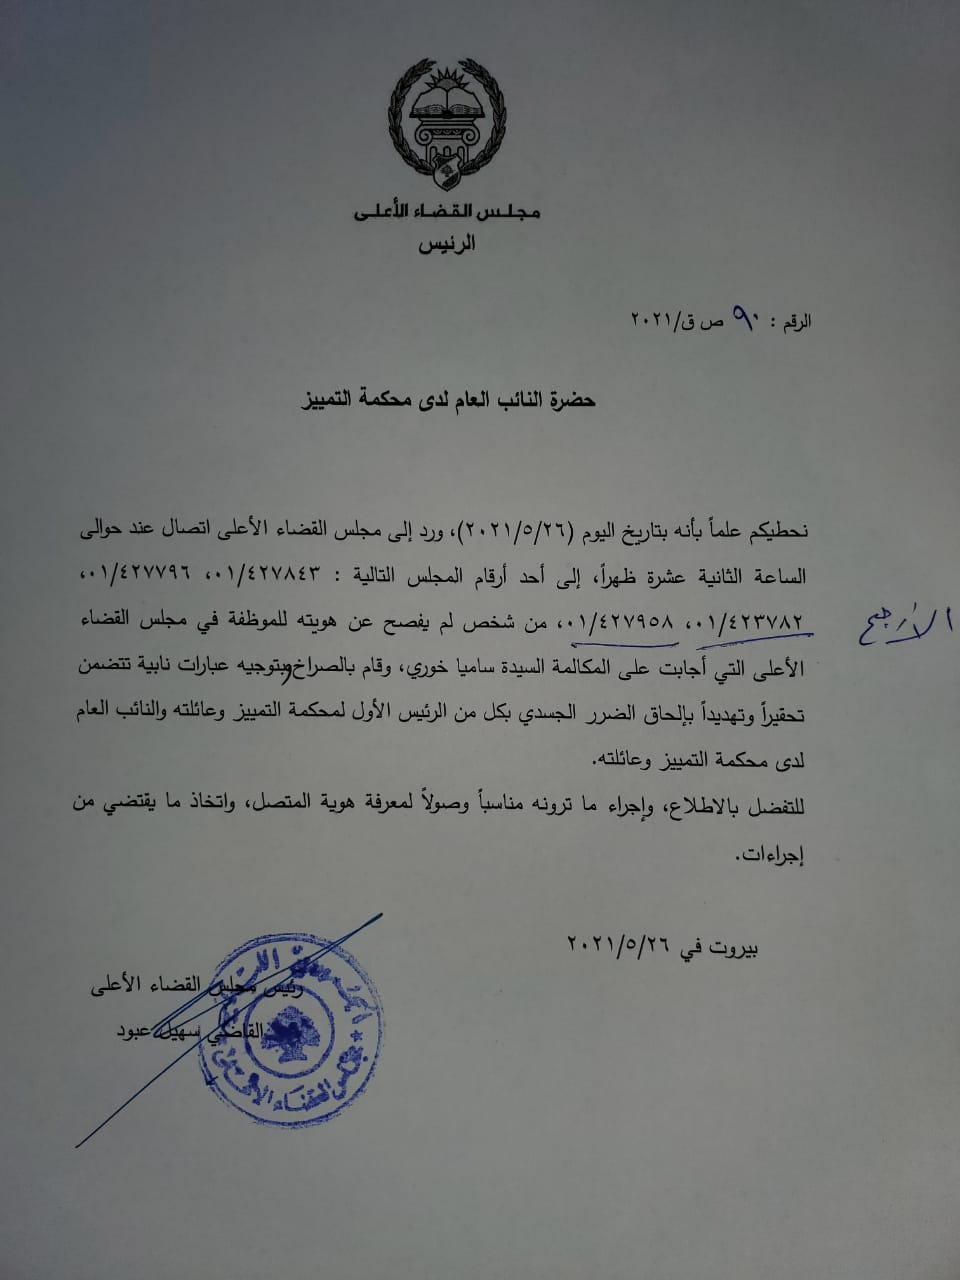 The Lebanese High Judicial Council received a threat directed at State Prosecutor Judge Ghassan Oueidat on Wednesday.